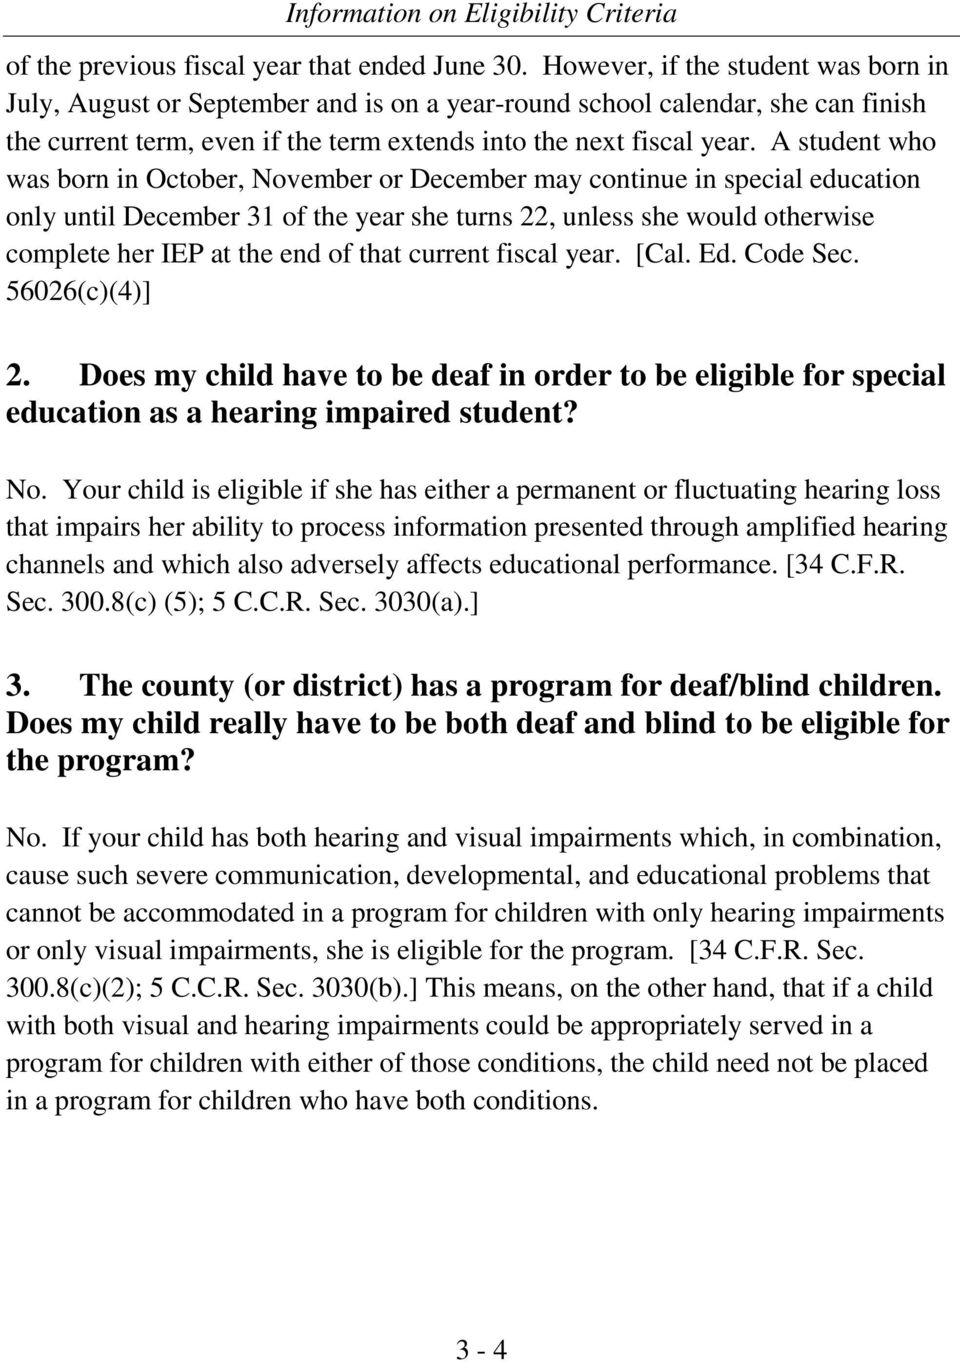 A student who was born in October, November or December may continue in special education only until December 31 of the year she turns 22, unless she would otherwise complete her IEP at the end of